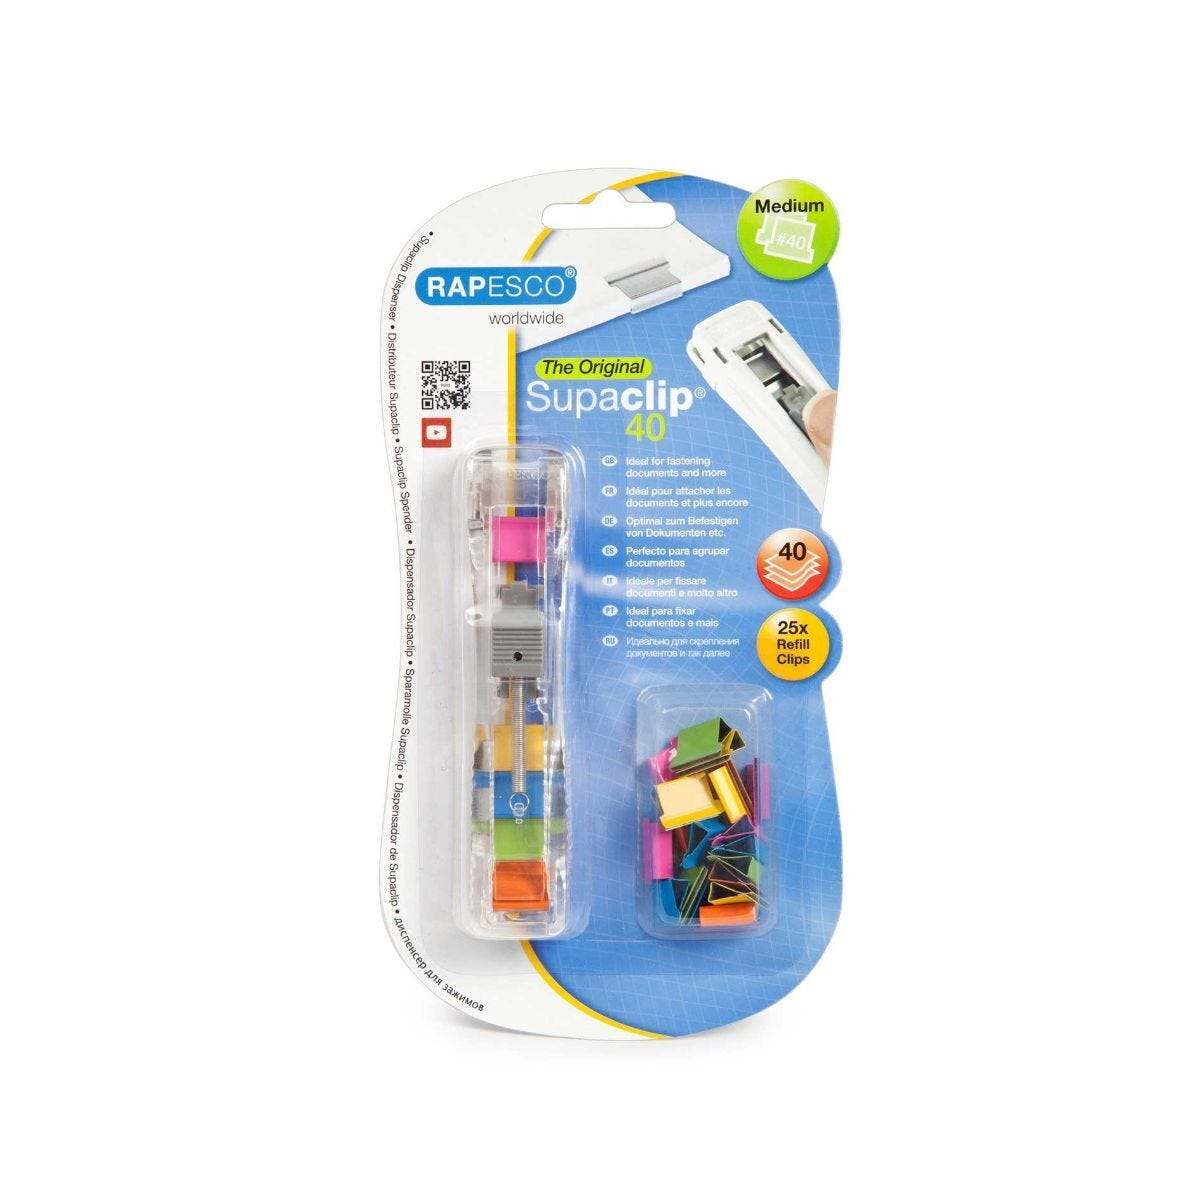 Rapesco Supaclips Dispenser Pack of 25 Clips